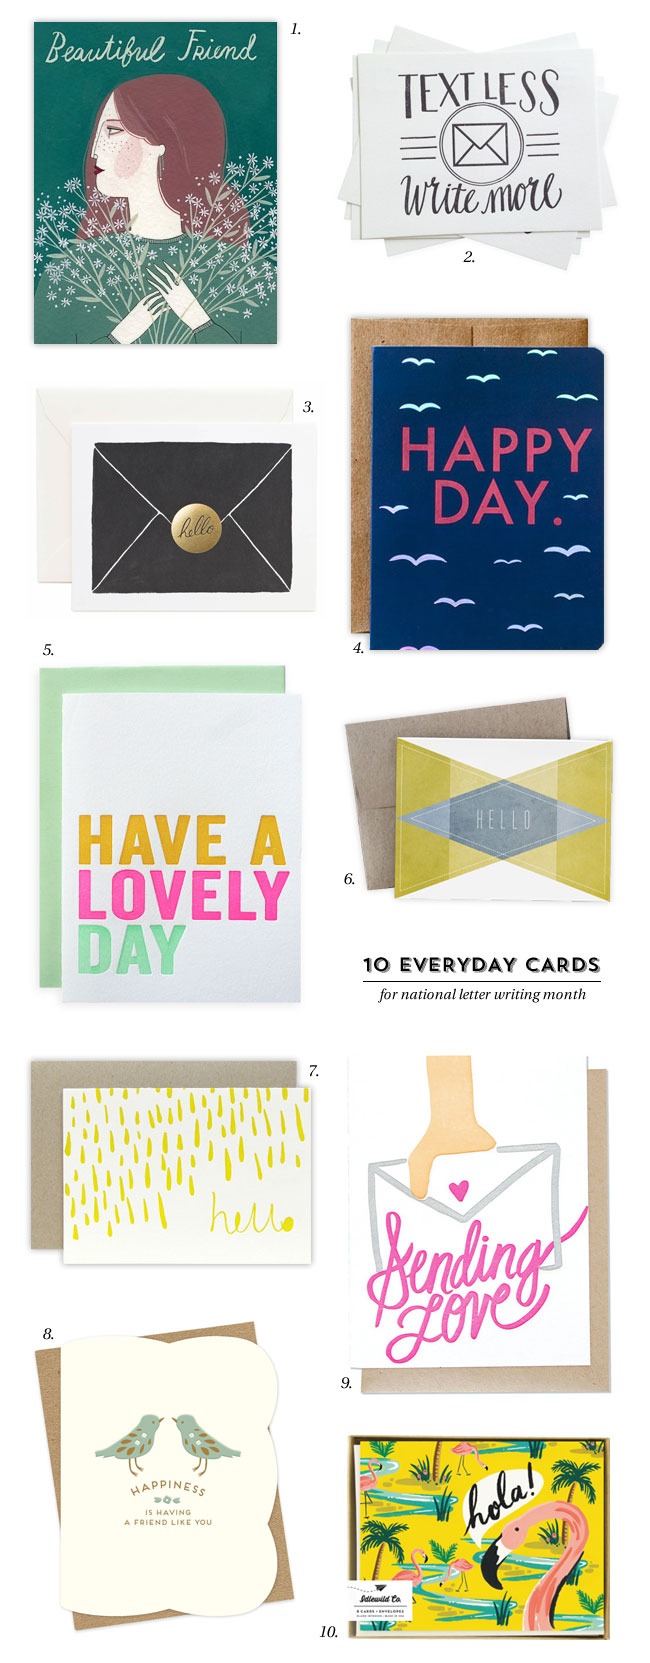 10 Everyday Cards for National Letter Writing Month